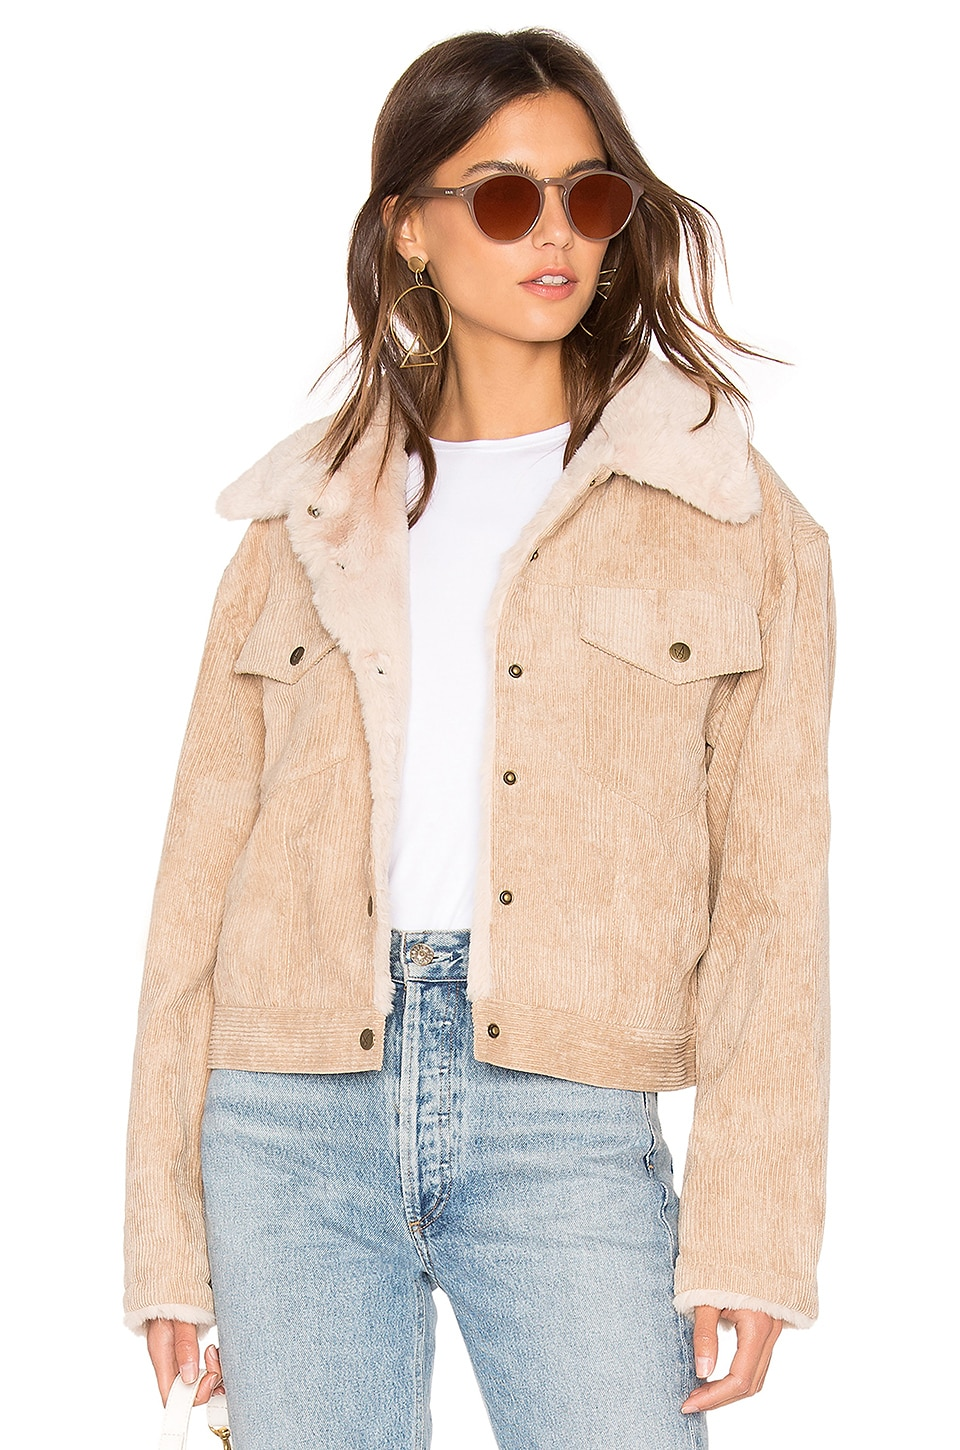 MINKPINK Bandit Cord Faux Fur Trucker Jacket in Beige